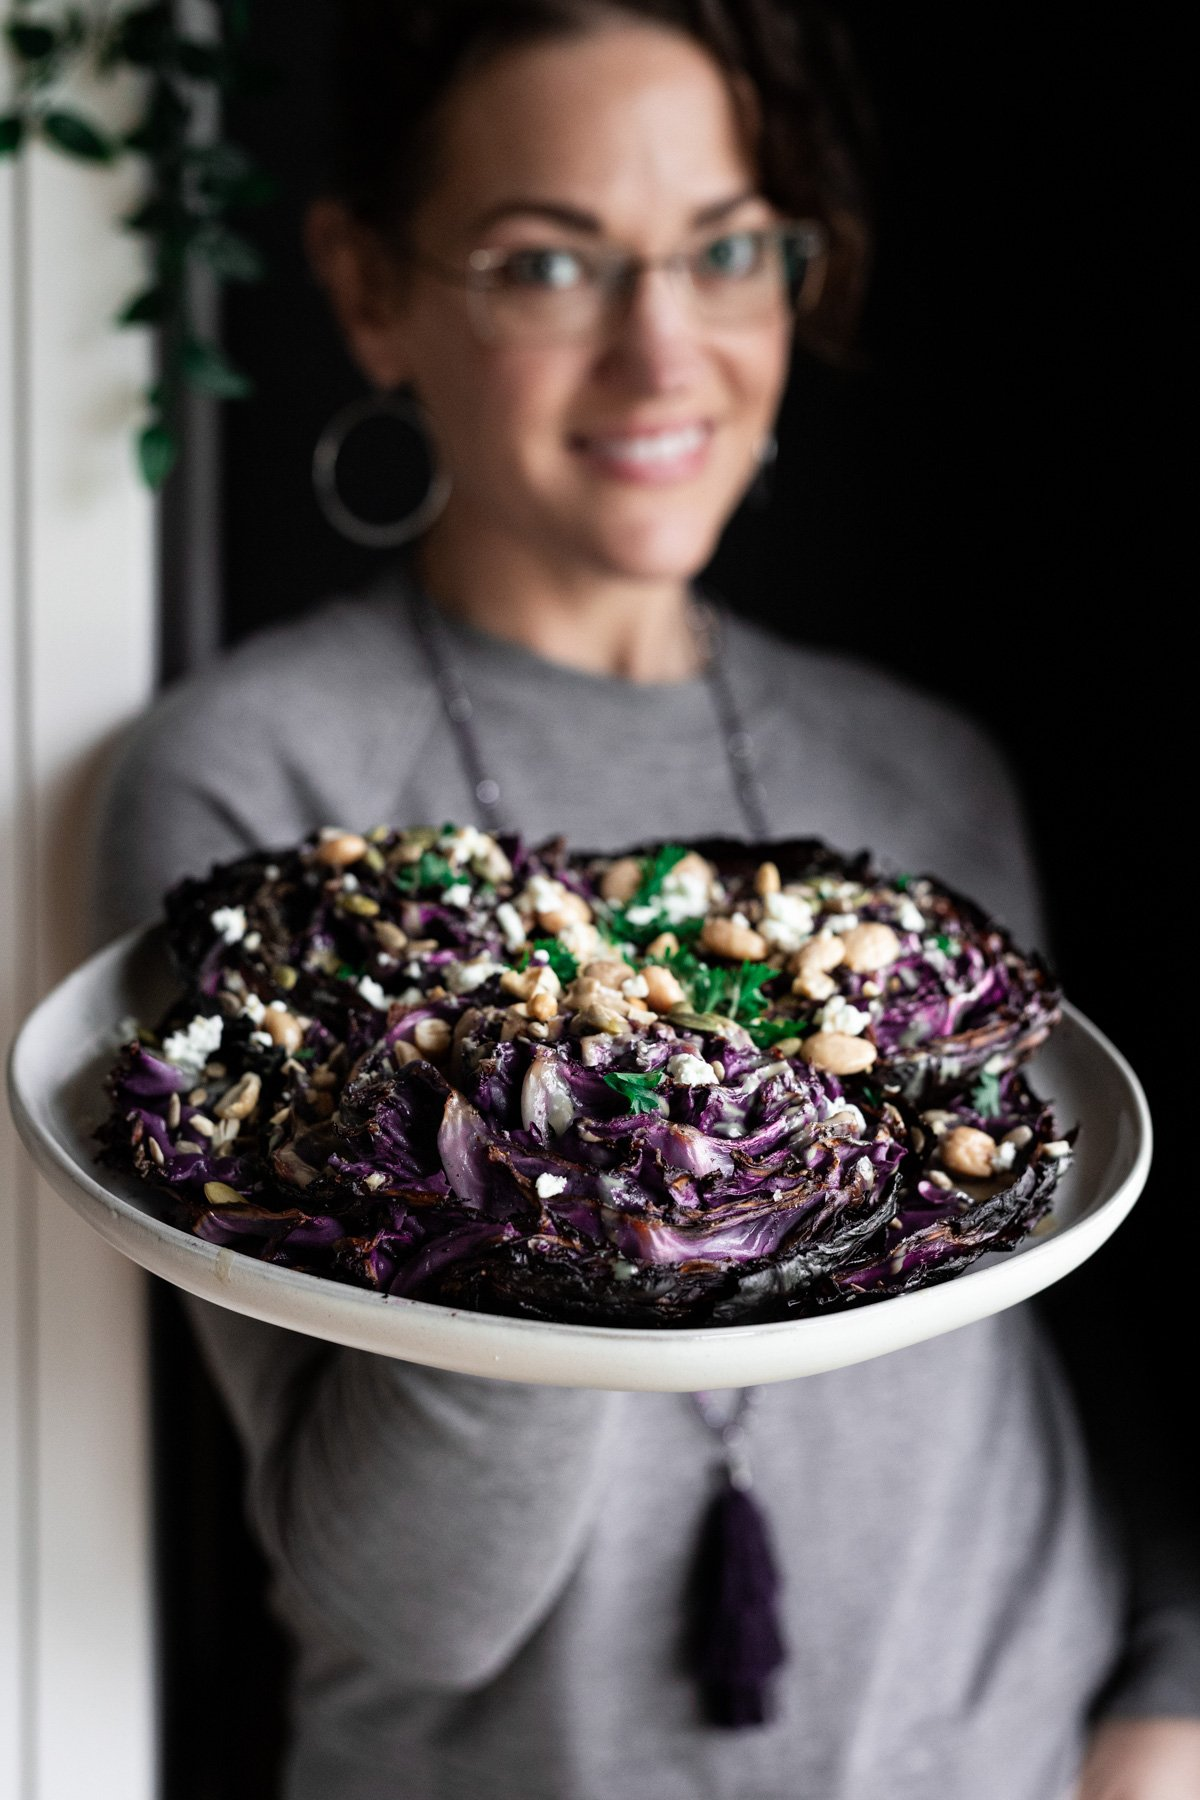 karly gomez holding a plate of roasted red cabbage ready to be served